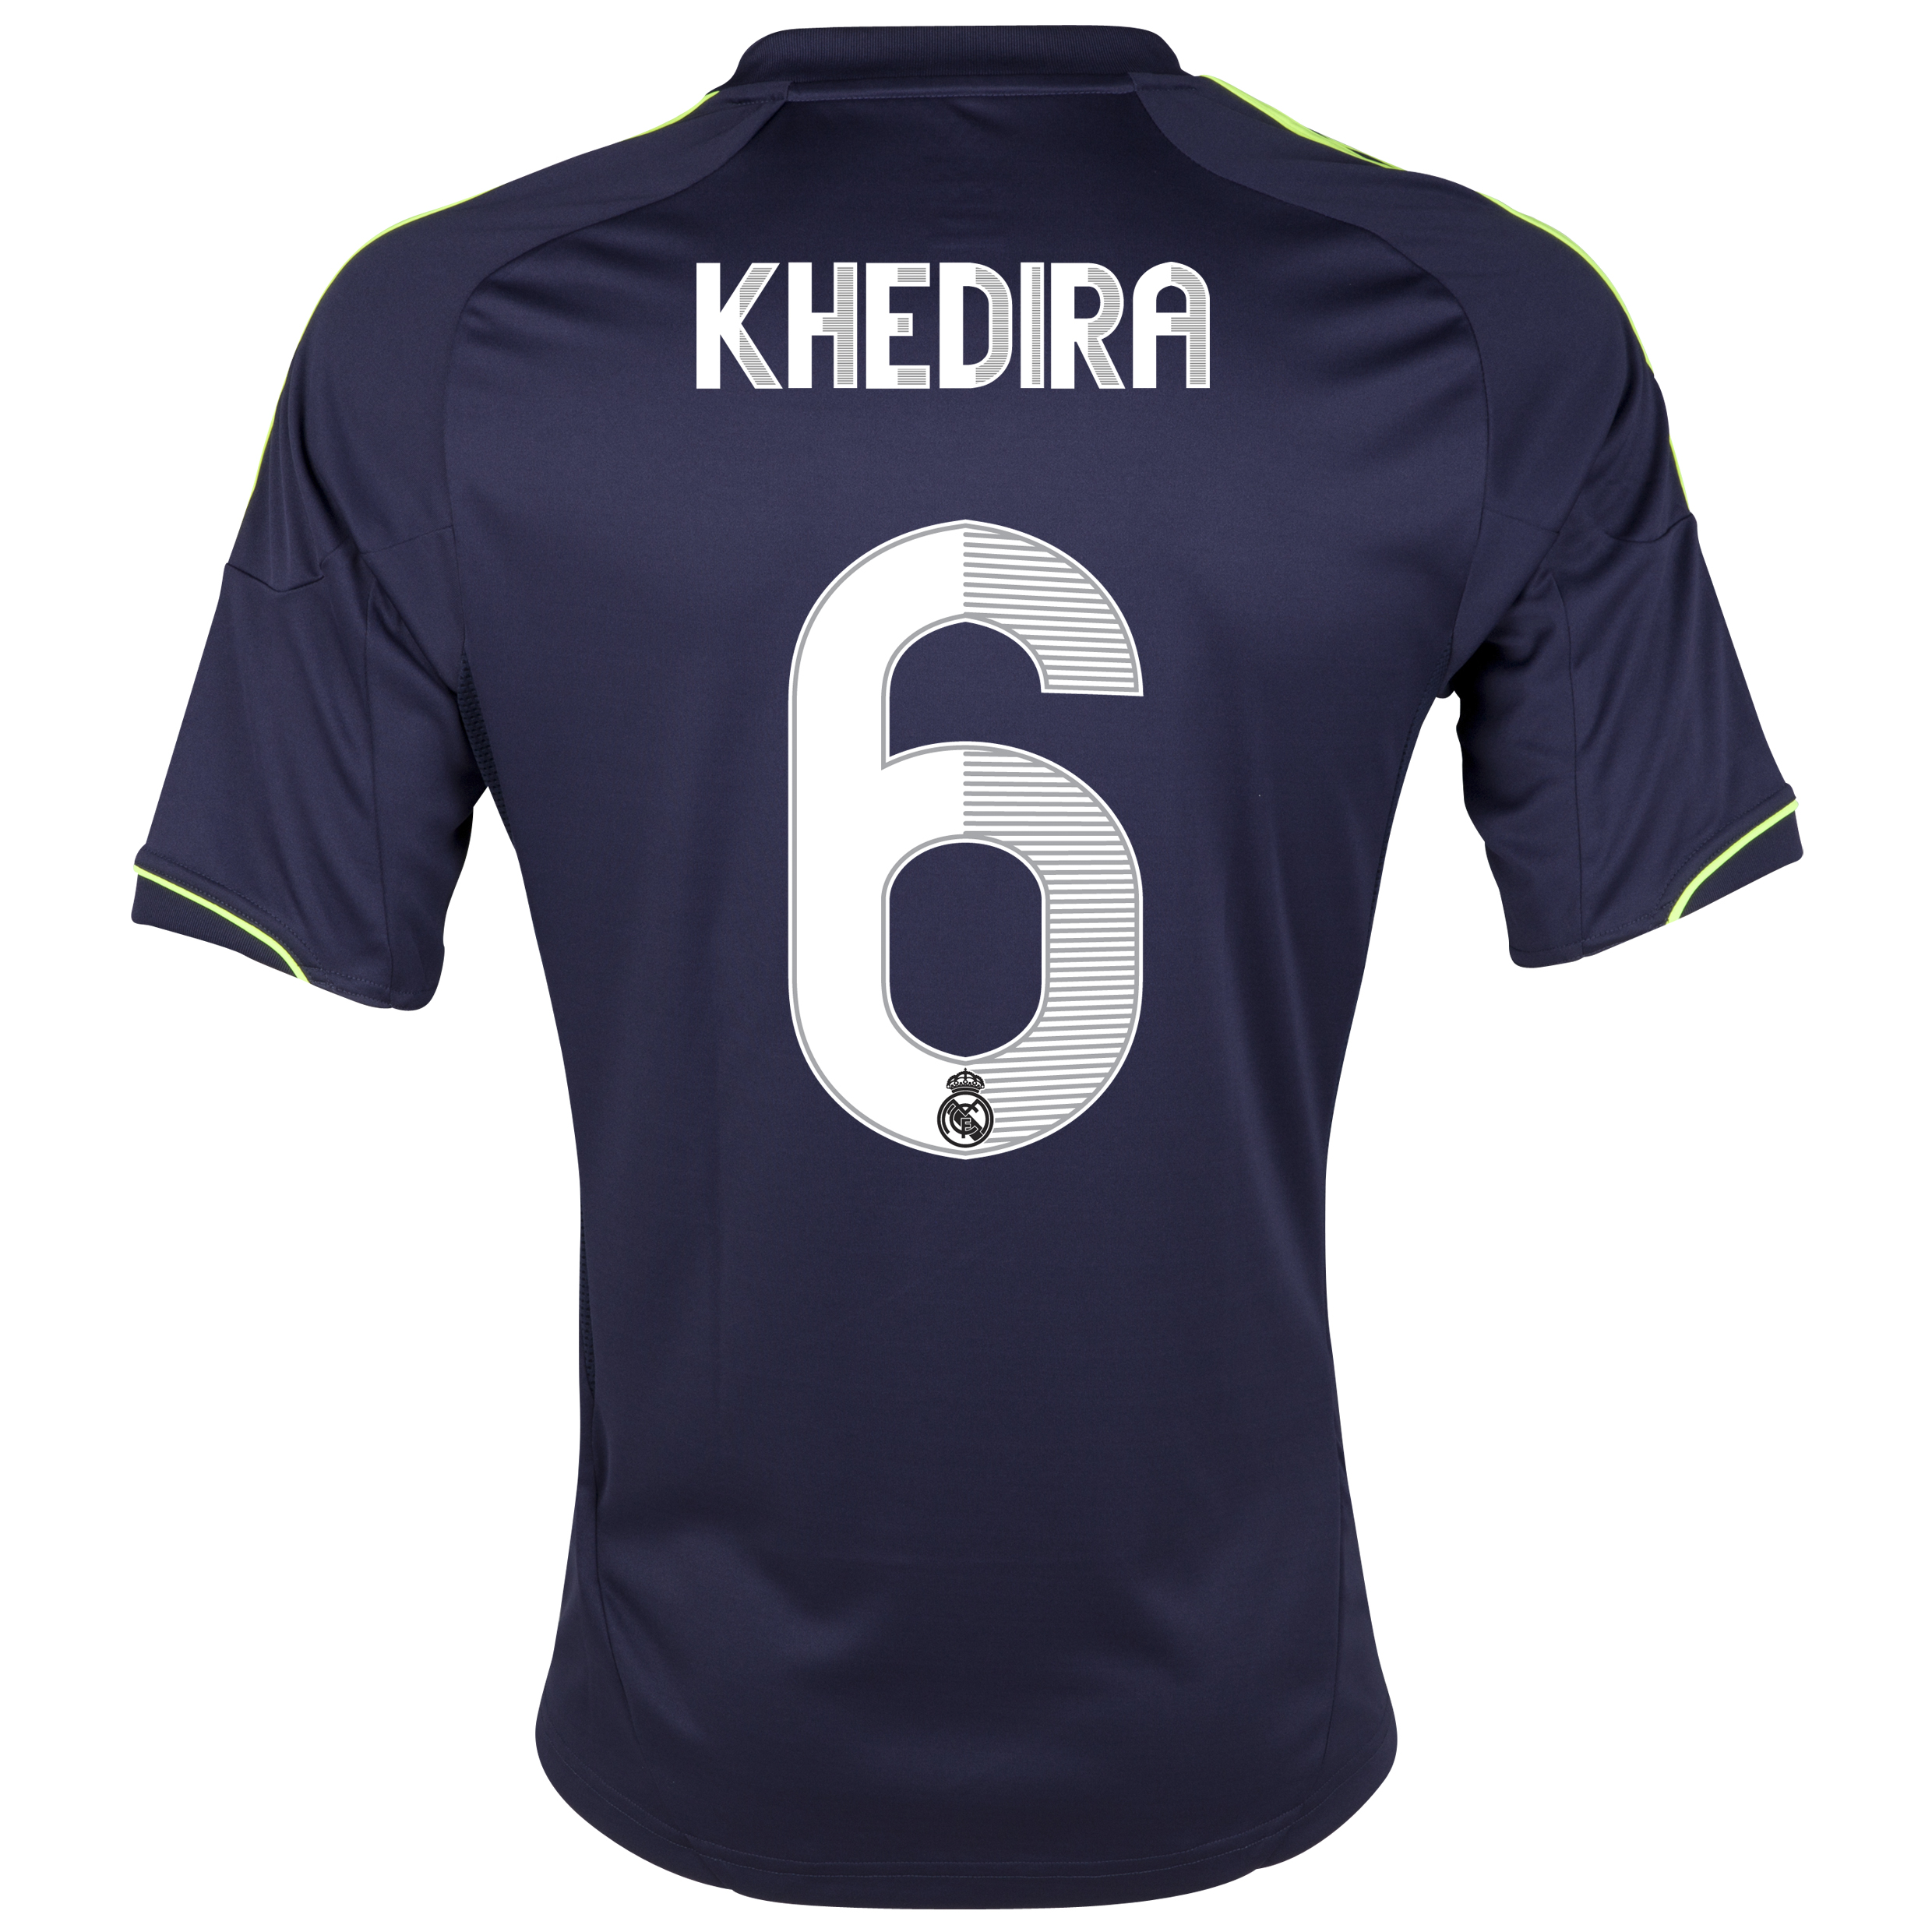 Camiseta visitante Real Madrid 2012/13 con impresin 6 Khedira - Nio